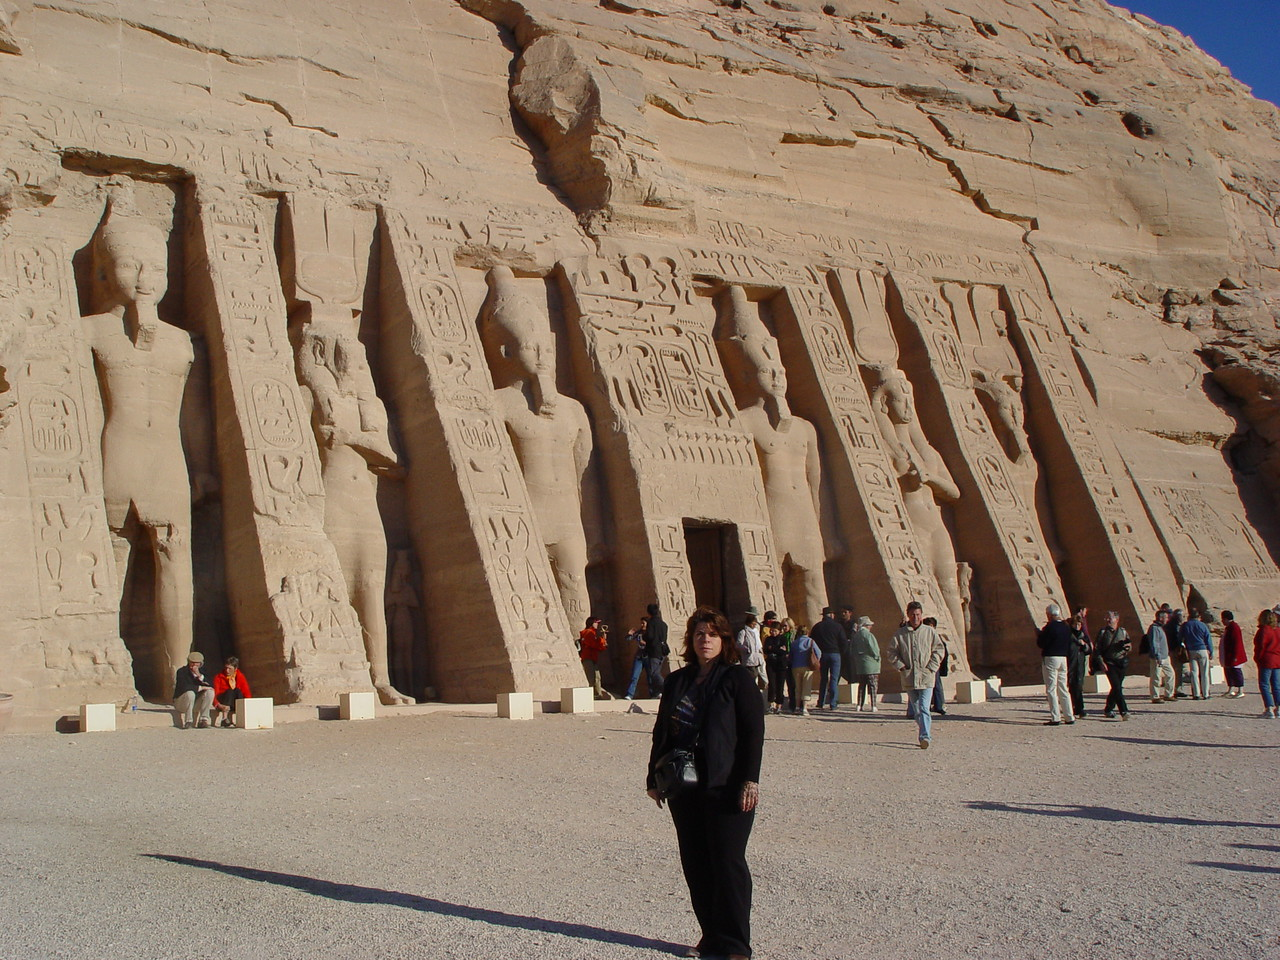 h) The Temple of Hathor was built to honor both Hathor as the goddess of love/music and Ramesses's wife Nefertari as the deified queen. There are six standing statues over 33 feet/10 meters high. Two statues of Ramesses flank one of Nefertari dressed as Hathor. His ego out does Nefertari, however, the fact that he made her proportional to himself is unheard of for a pharoah. This demonstrates that he truly loved her.